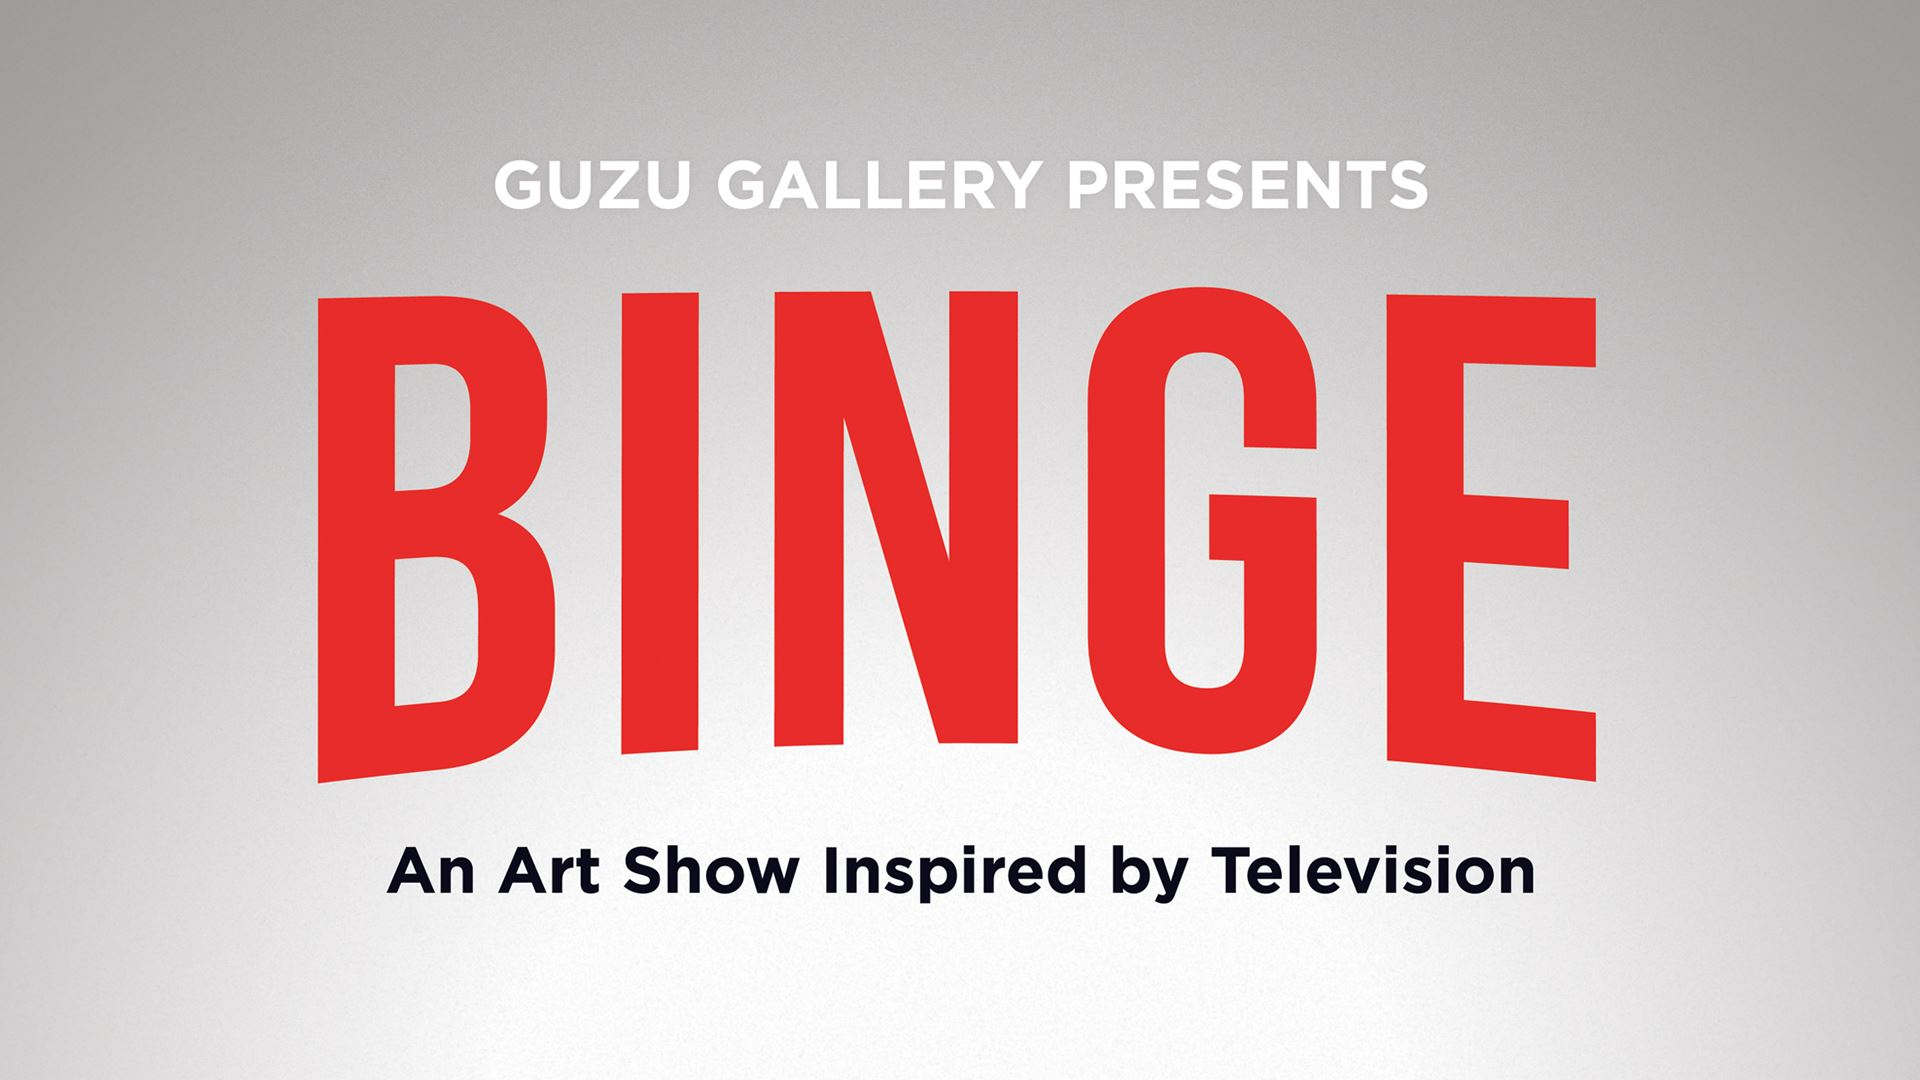 Binge: An Art Show Inspired by Television